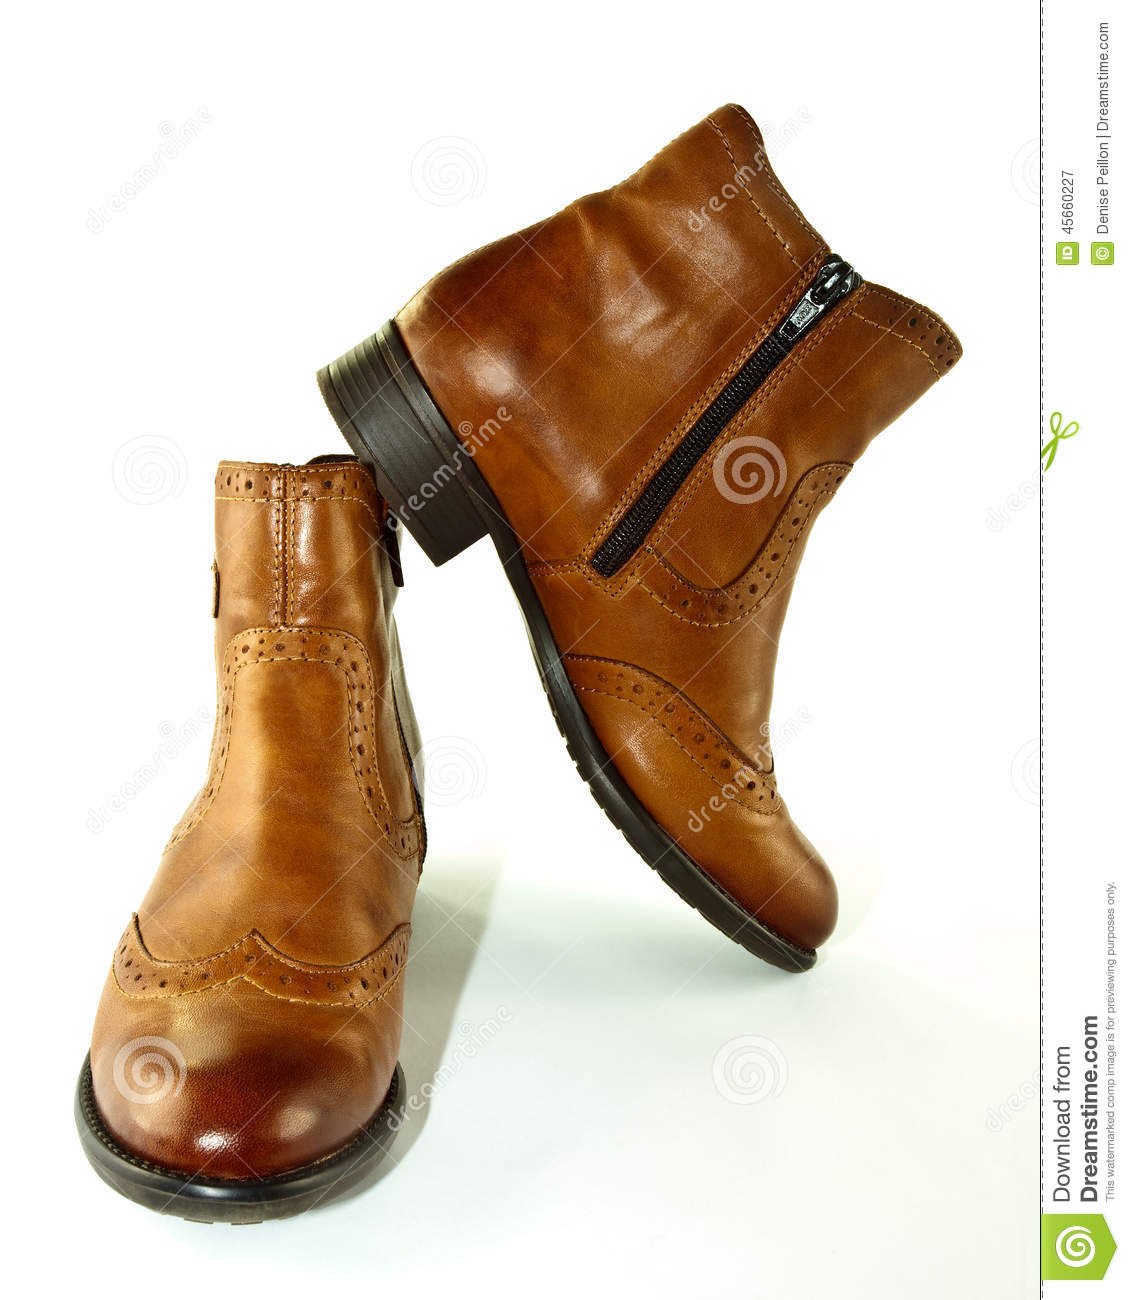 Ankle Boots Stock Photo - Image: 45660227